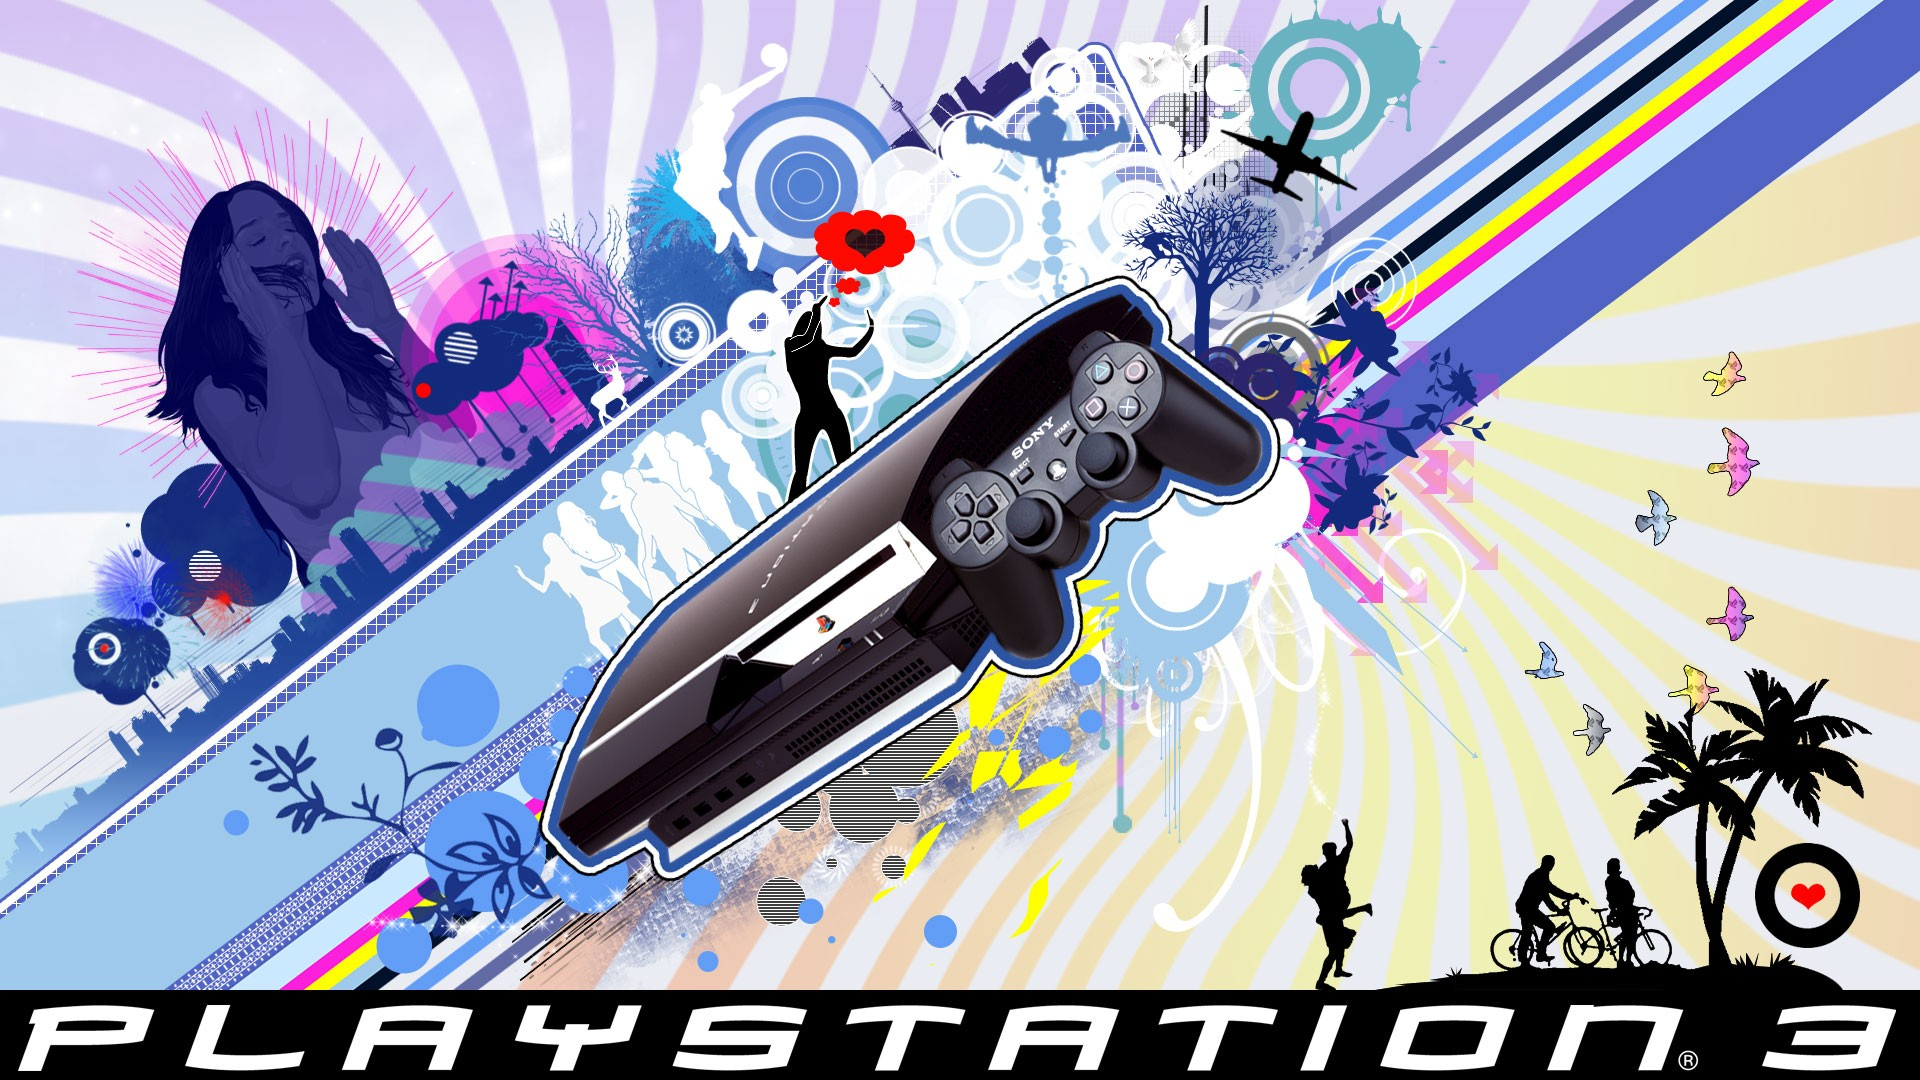 Ps3 themes wallpaperwiki 1920x1080